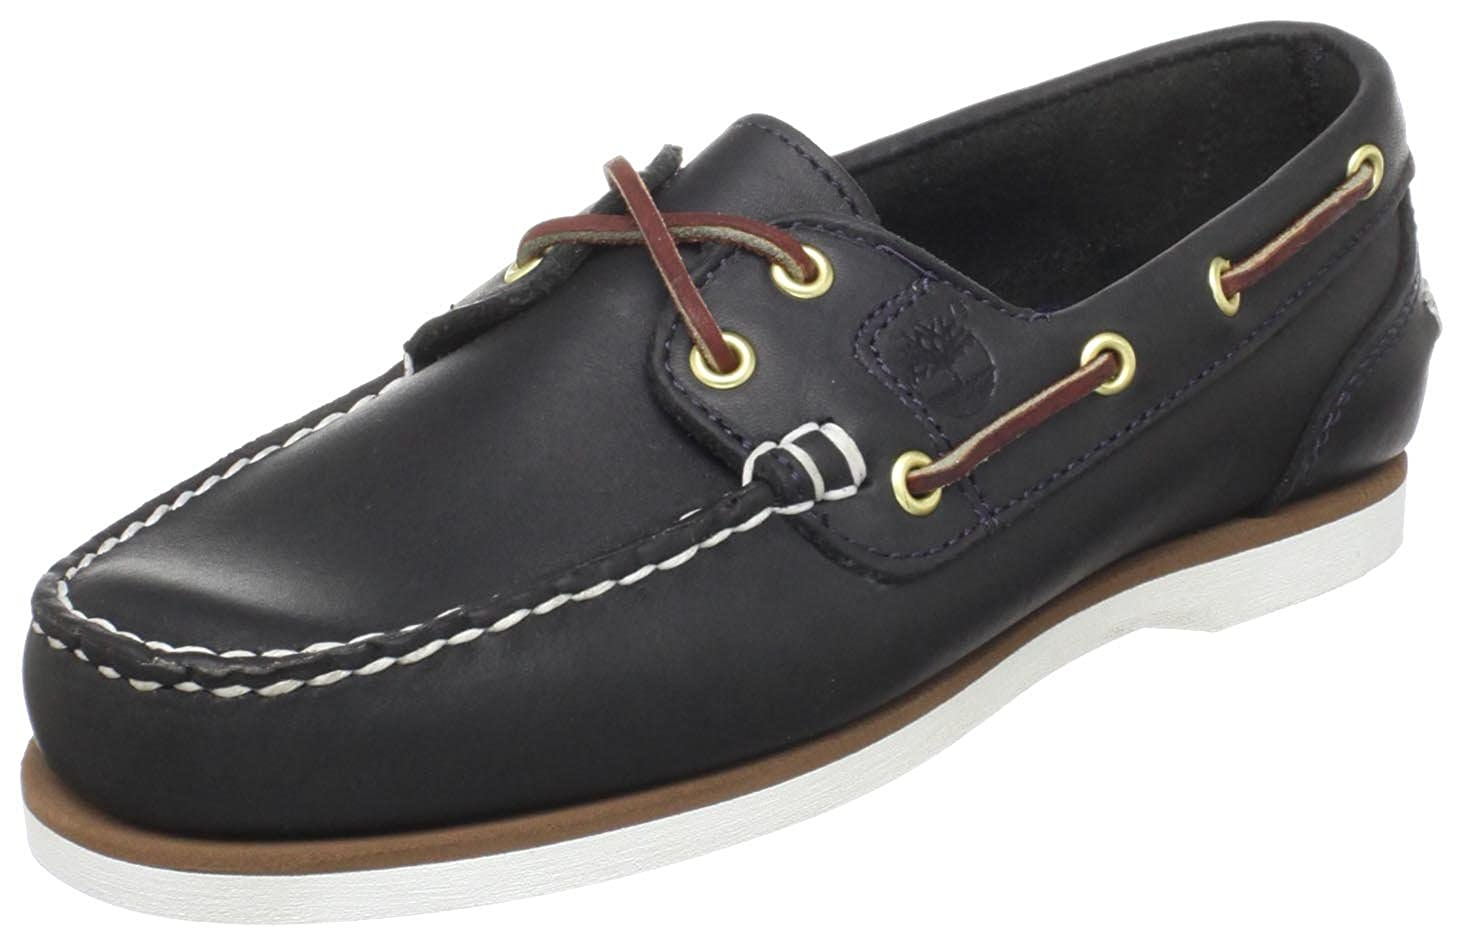 730f972fb Amazon.com | Timberland Women's Amherst Boat Shoe | Loafers & Slip-Ons